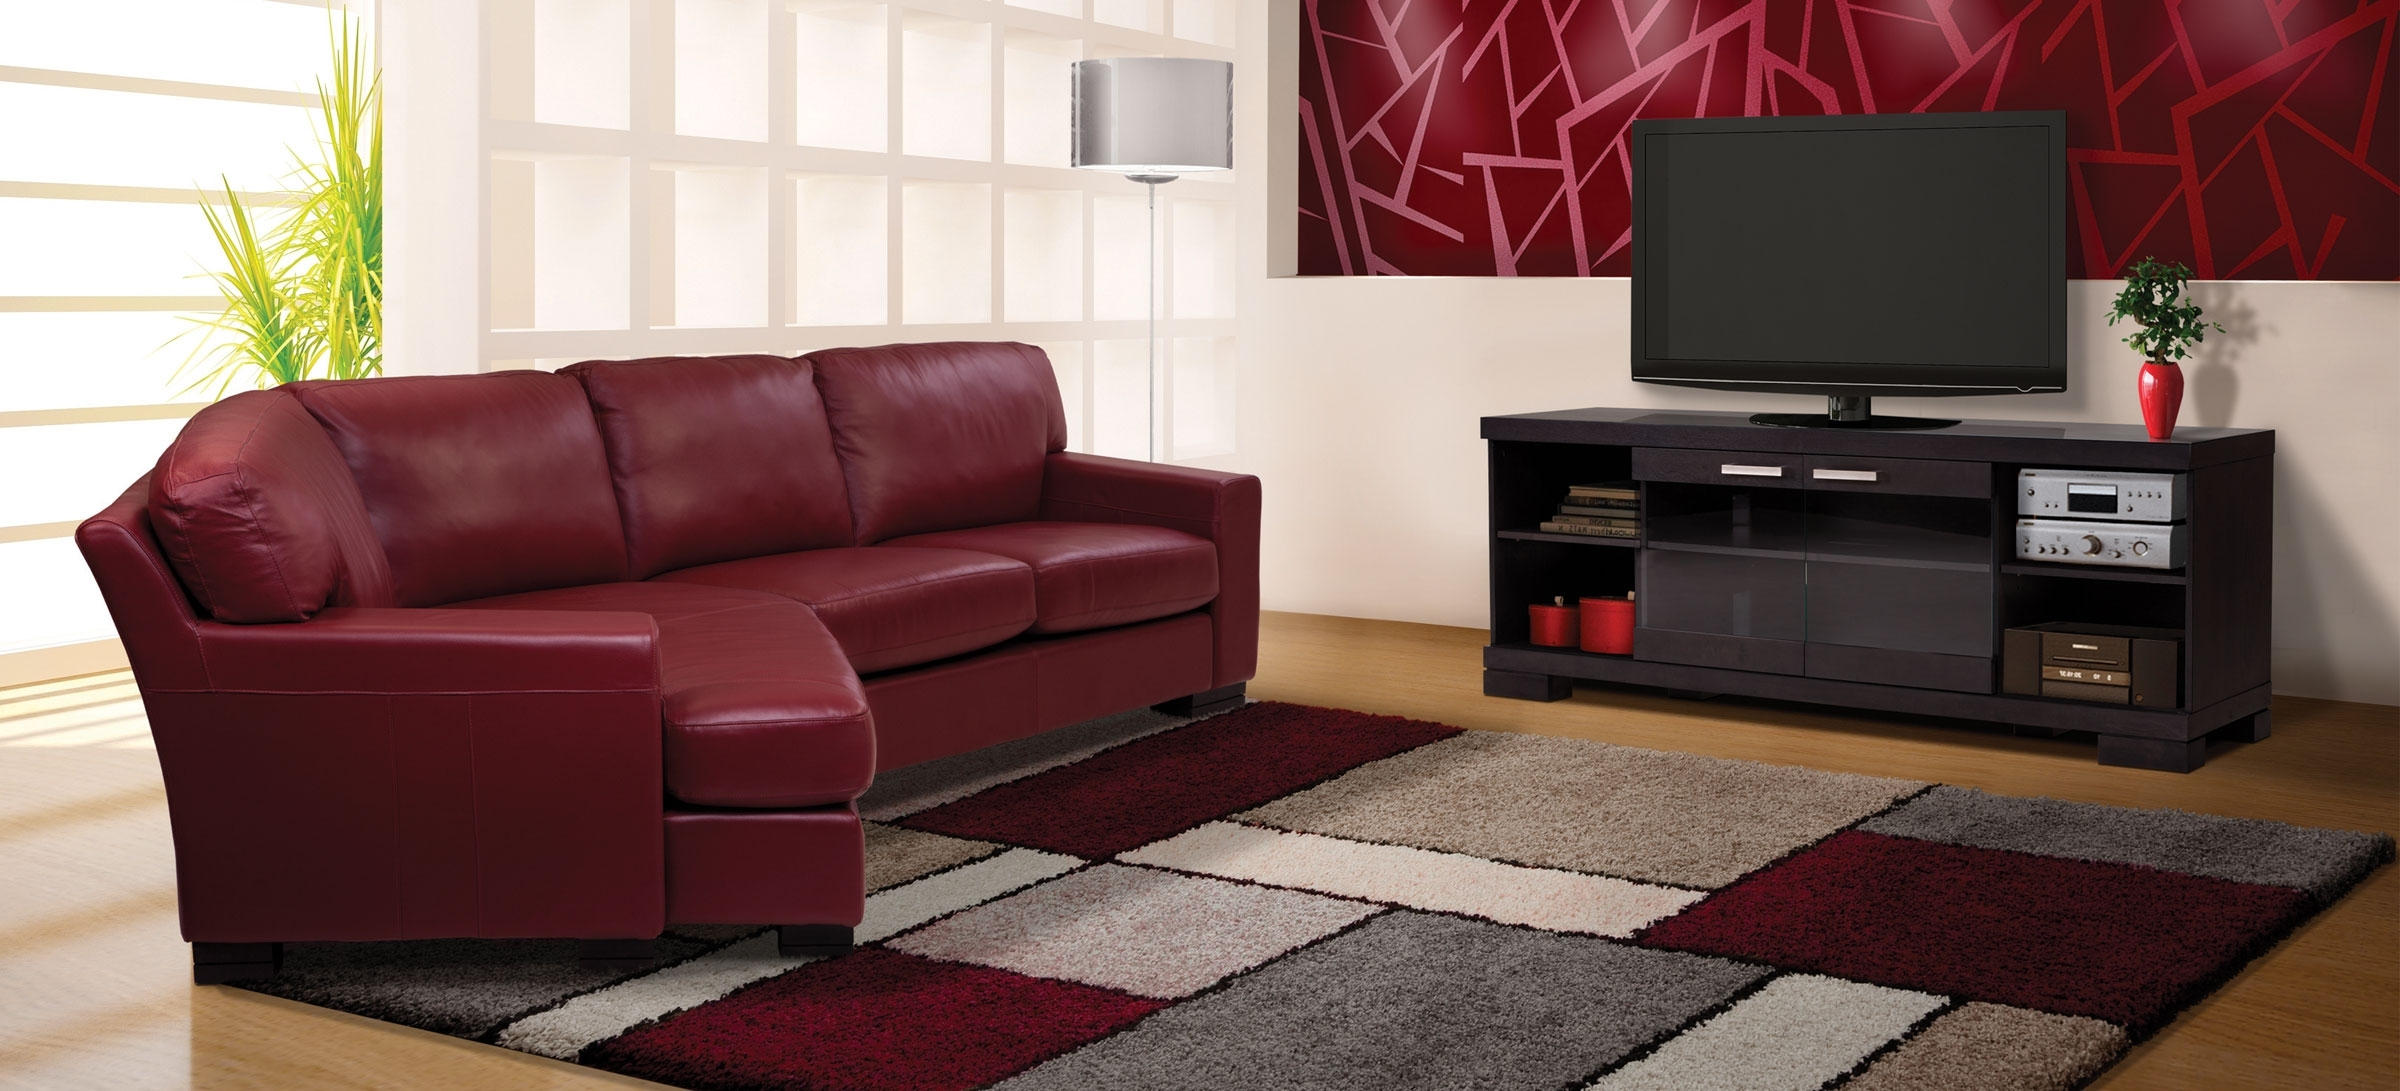 Apartment Sofa Condo – Contemporary Style – Jaymar Collection Inside Sectional Sofas For Condos (Image 3 of 10)